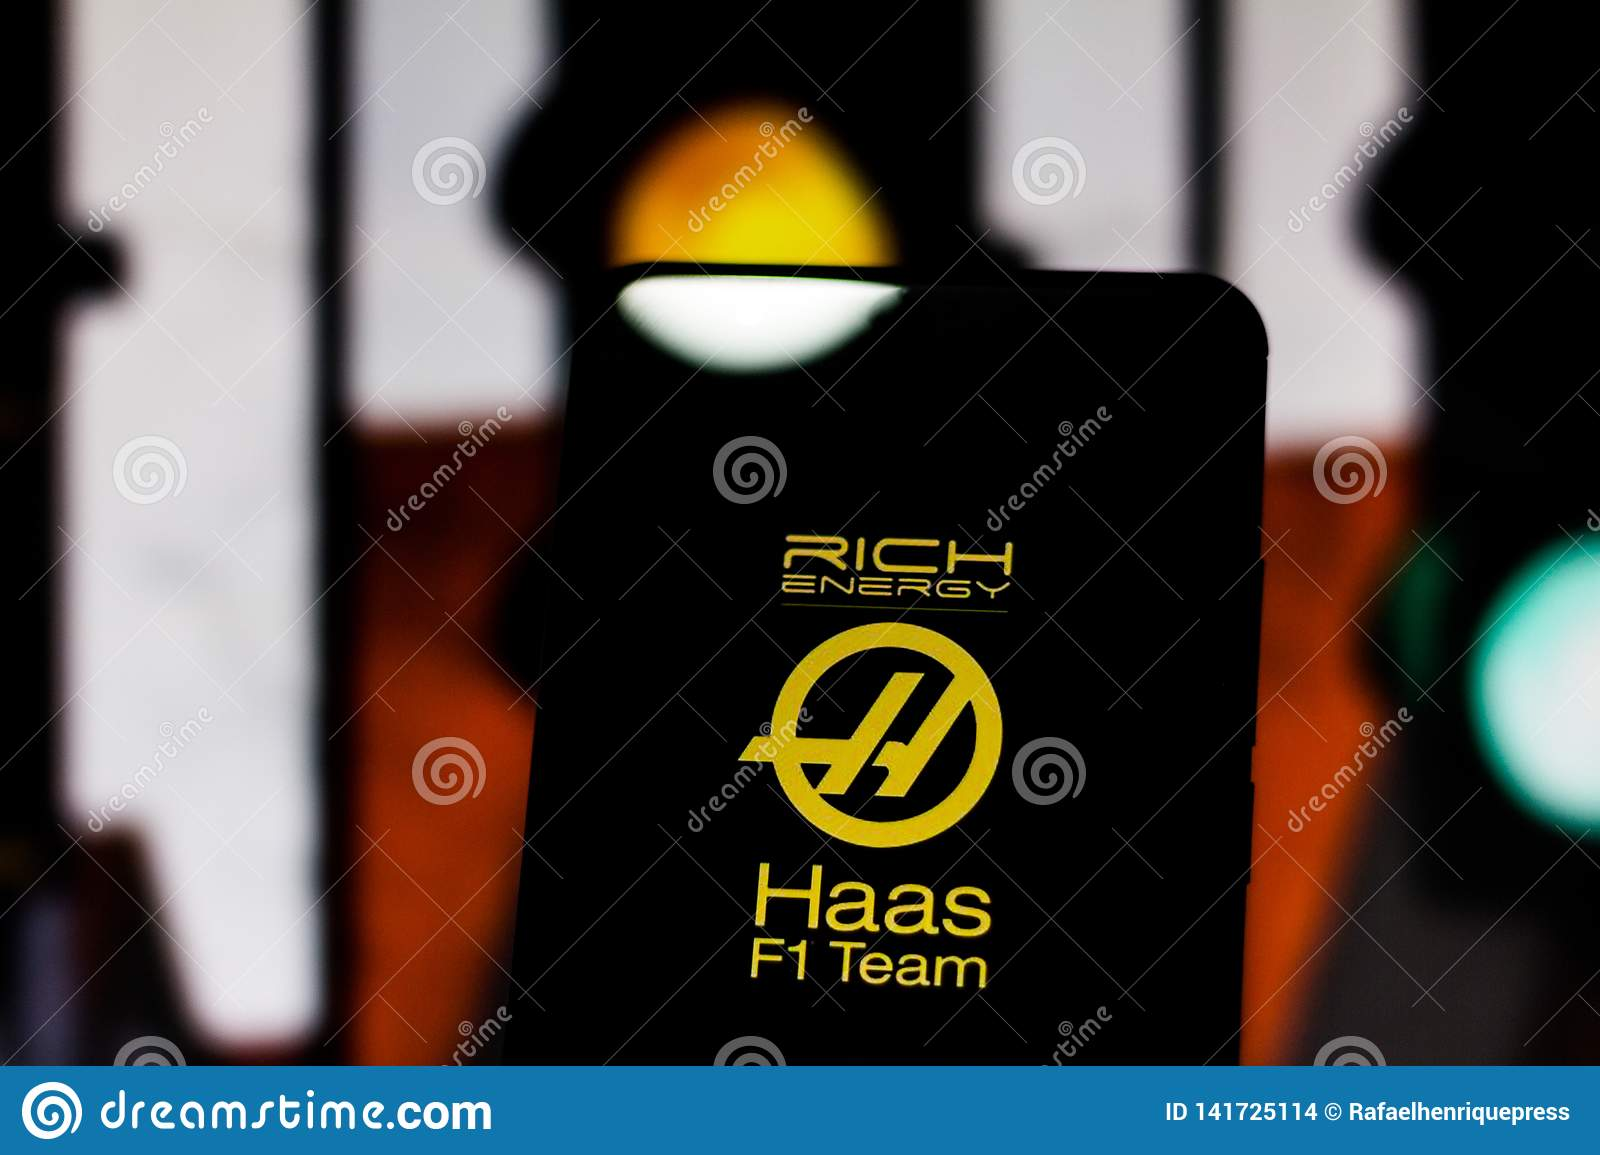 Team Logo Rich Energy Haas F1 Team Formula 1 On The Screen Of The Mobile Device Haas Dispute The World Motorsport Championship Editorial Stock Image Image Of Cellular Competition 141725114